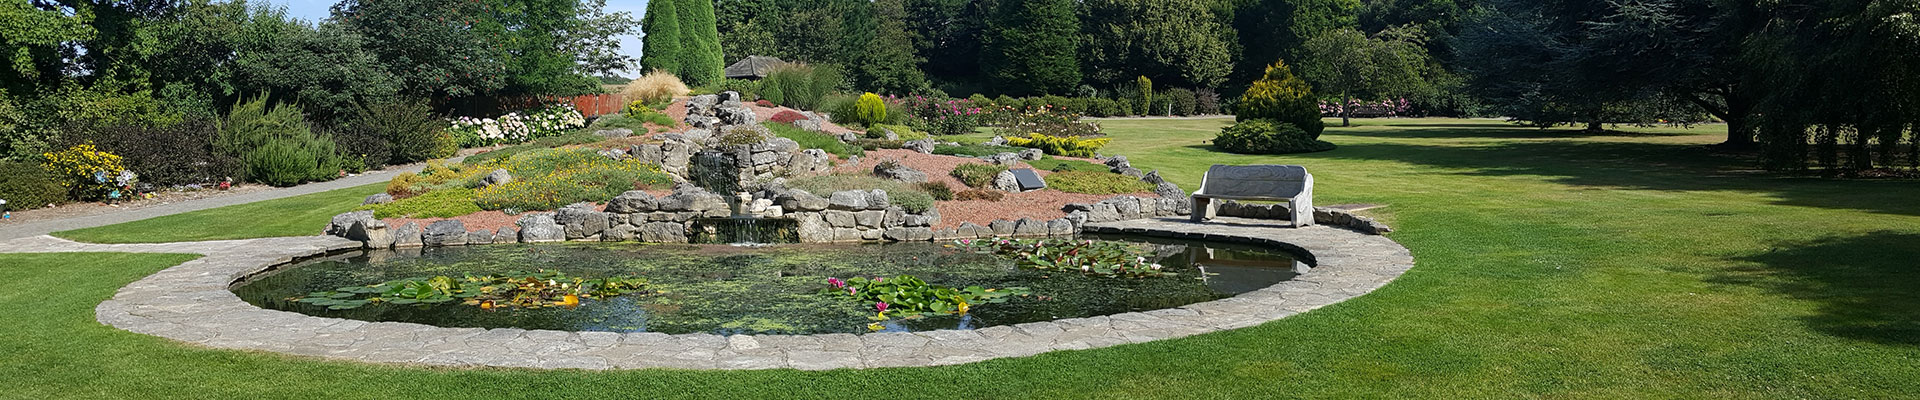 Photograph of the pond in the crematorium gardens